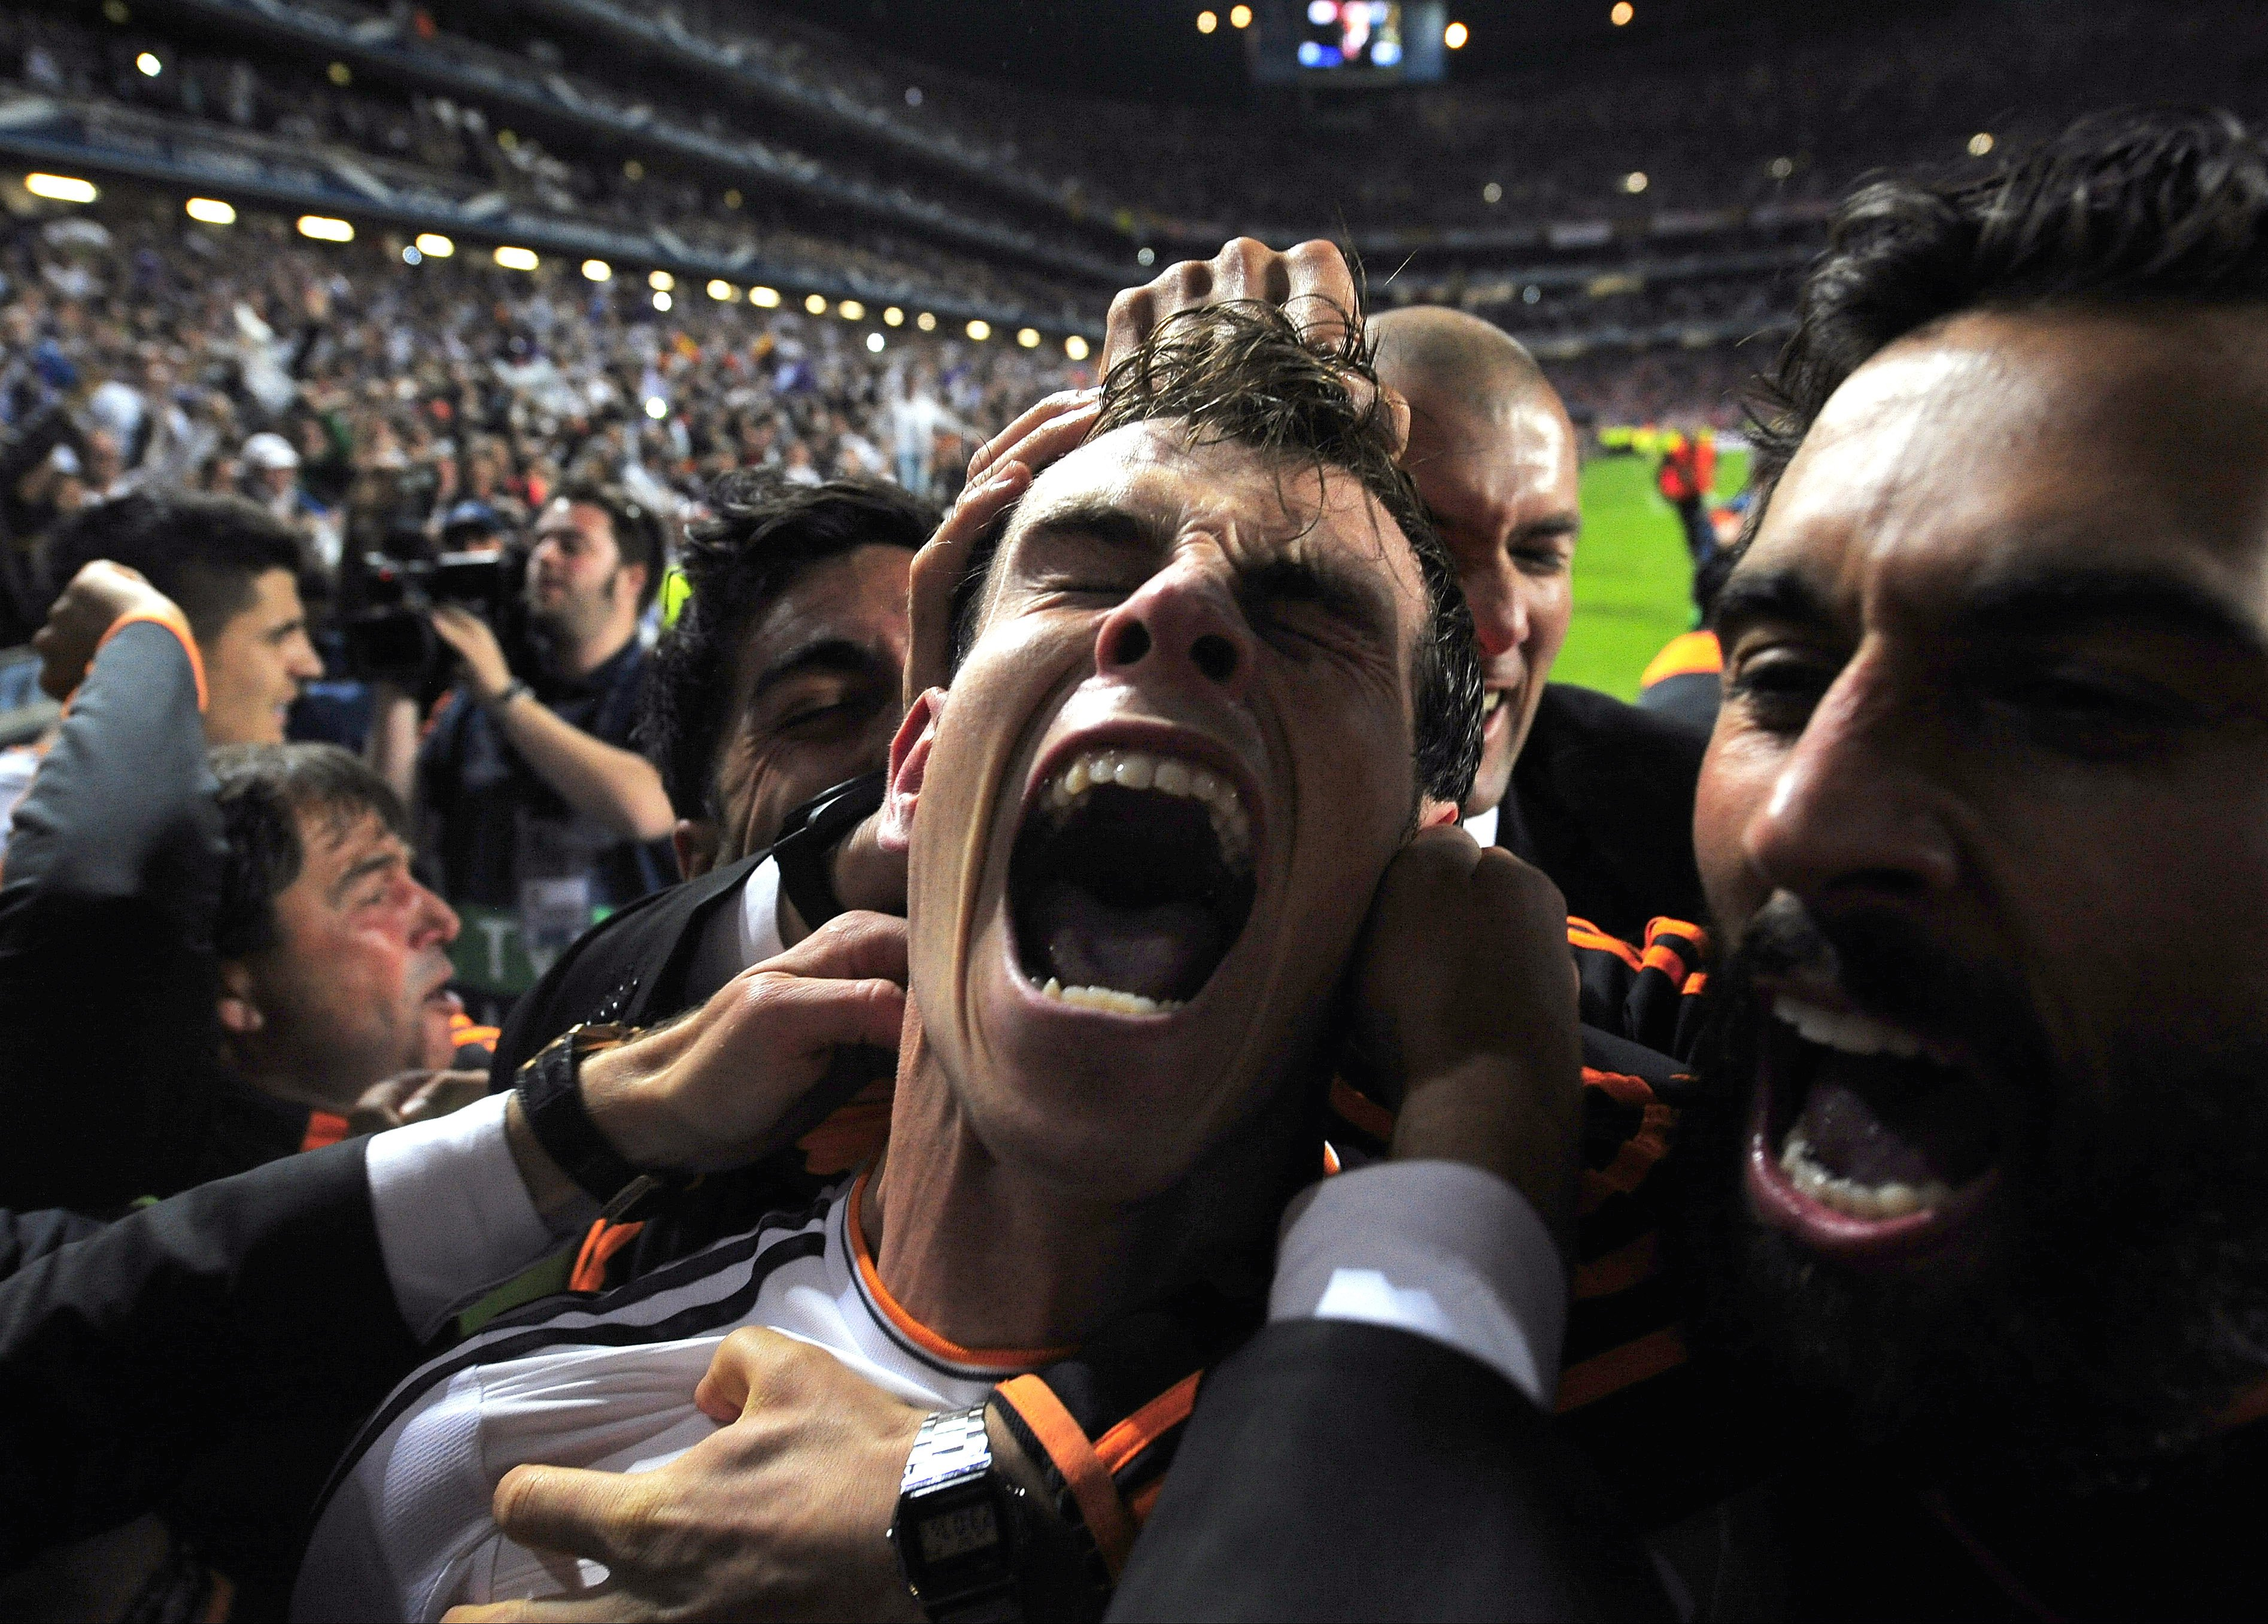 Real Madrid's Gareth Bale celebrates with teammates after scoring his second goal in the Champions League final soccer match against Atletico Madrid at the Luz Stadium in Lisbon on May 24, 2014.